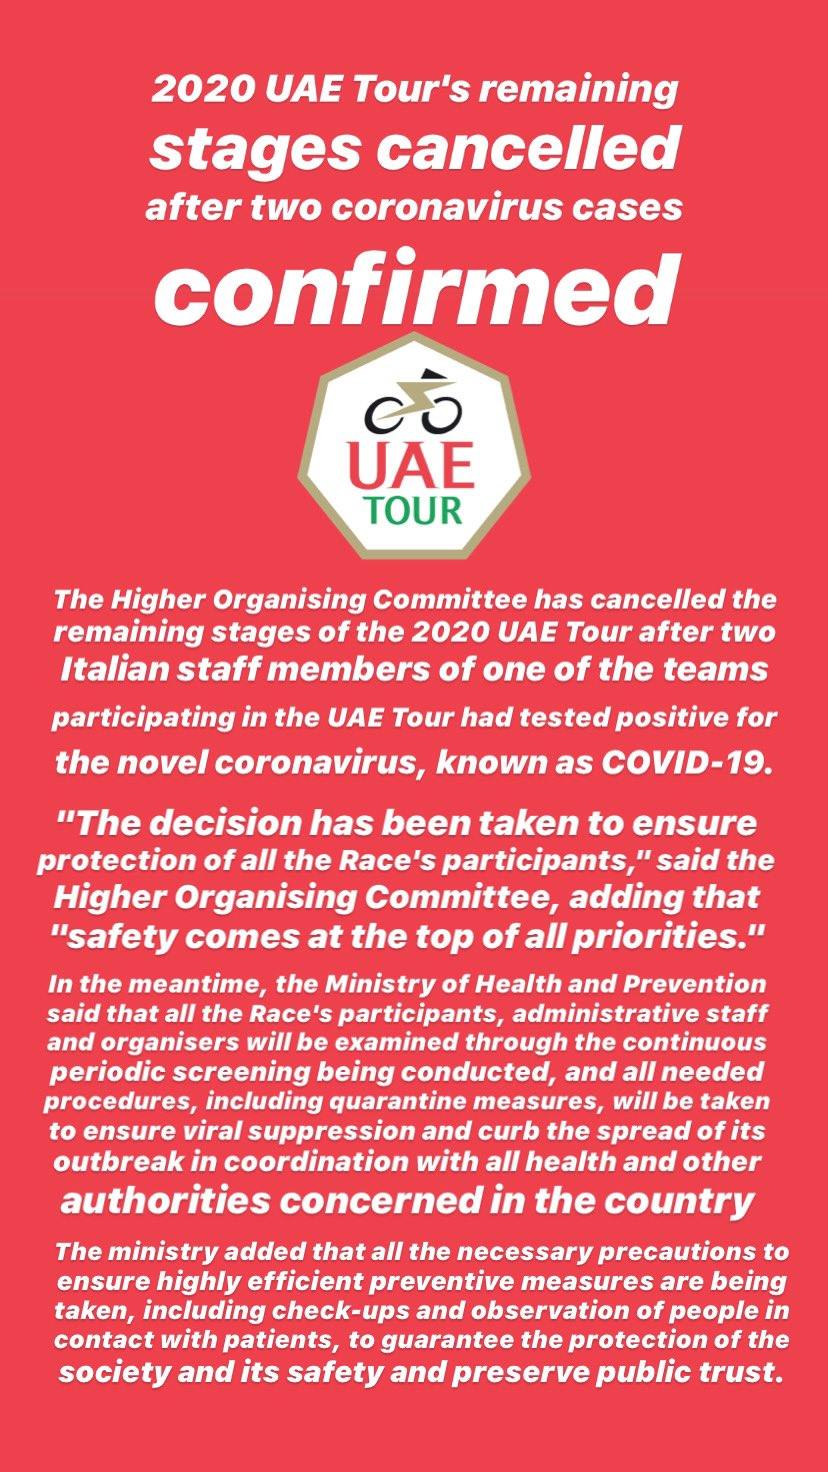 UAE tour cancelled coronavirus